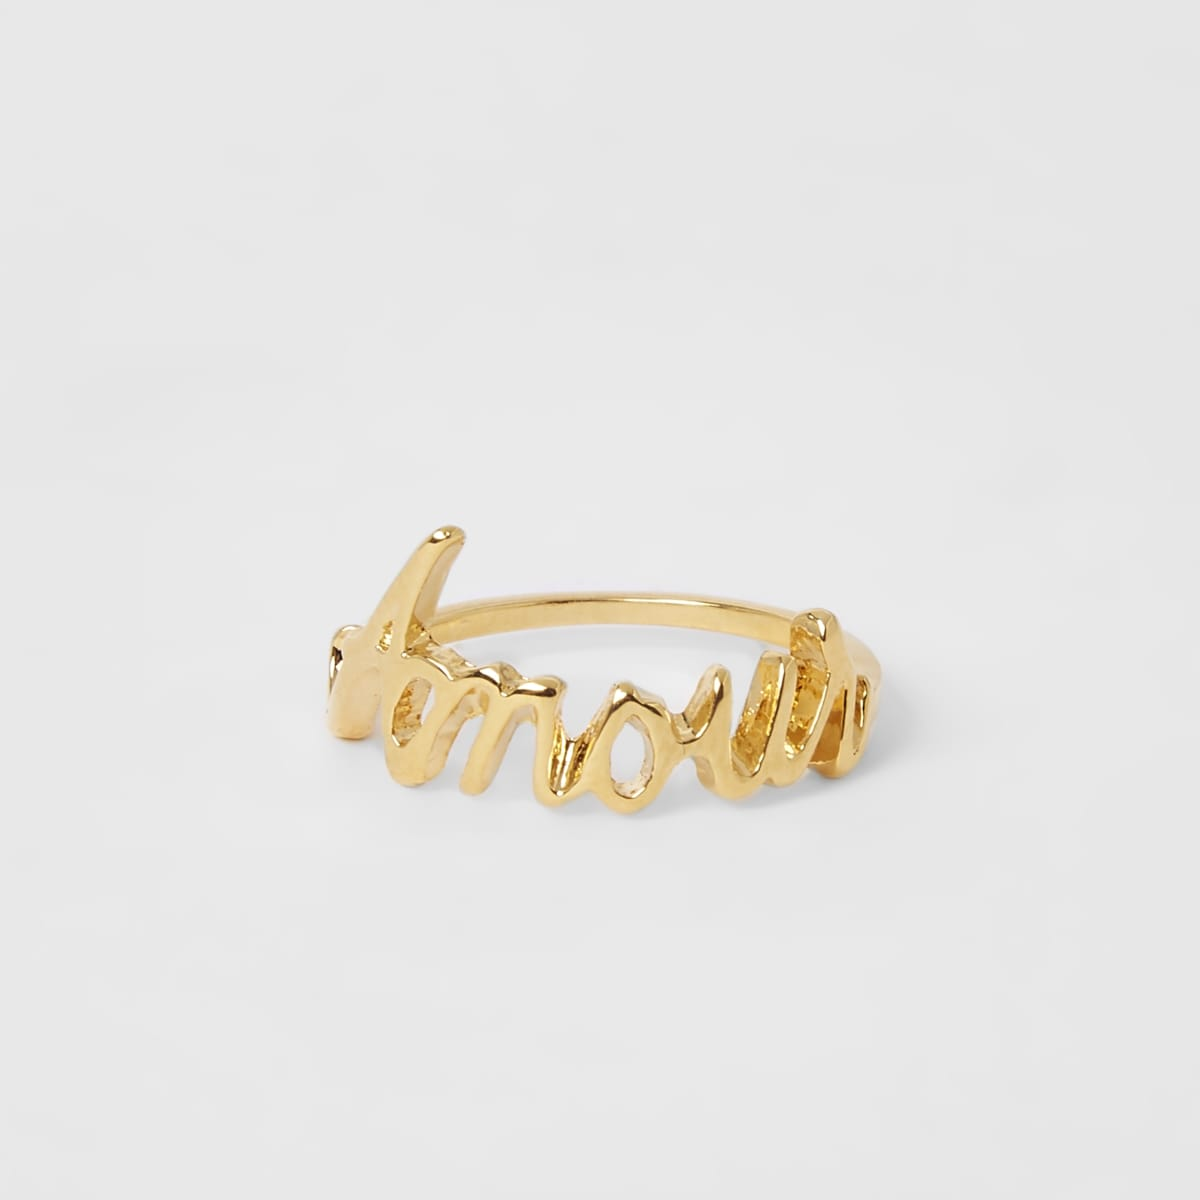 Gold color 'Amour' ring